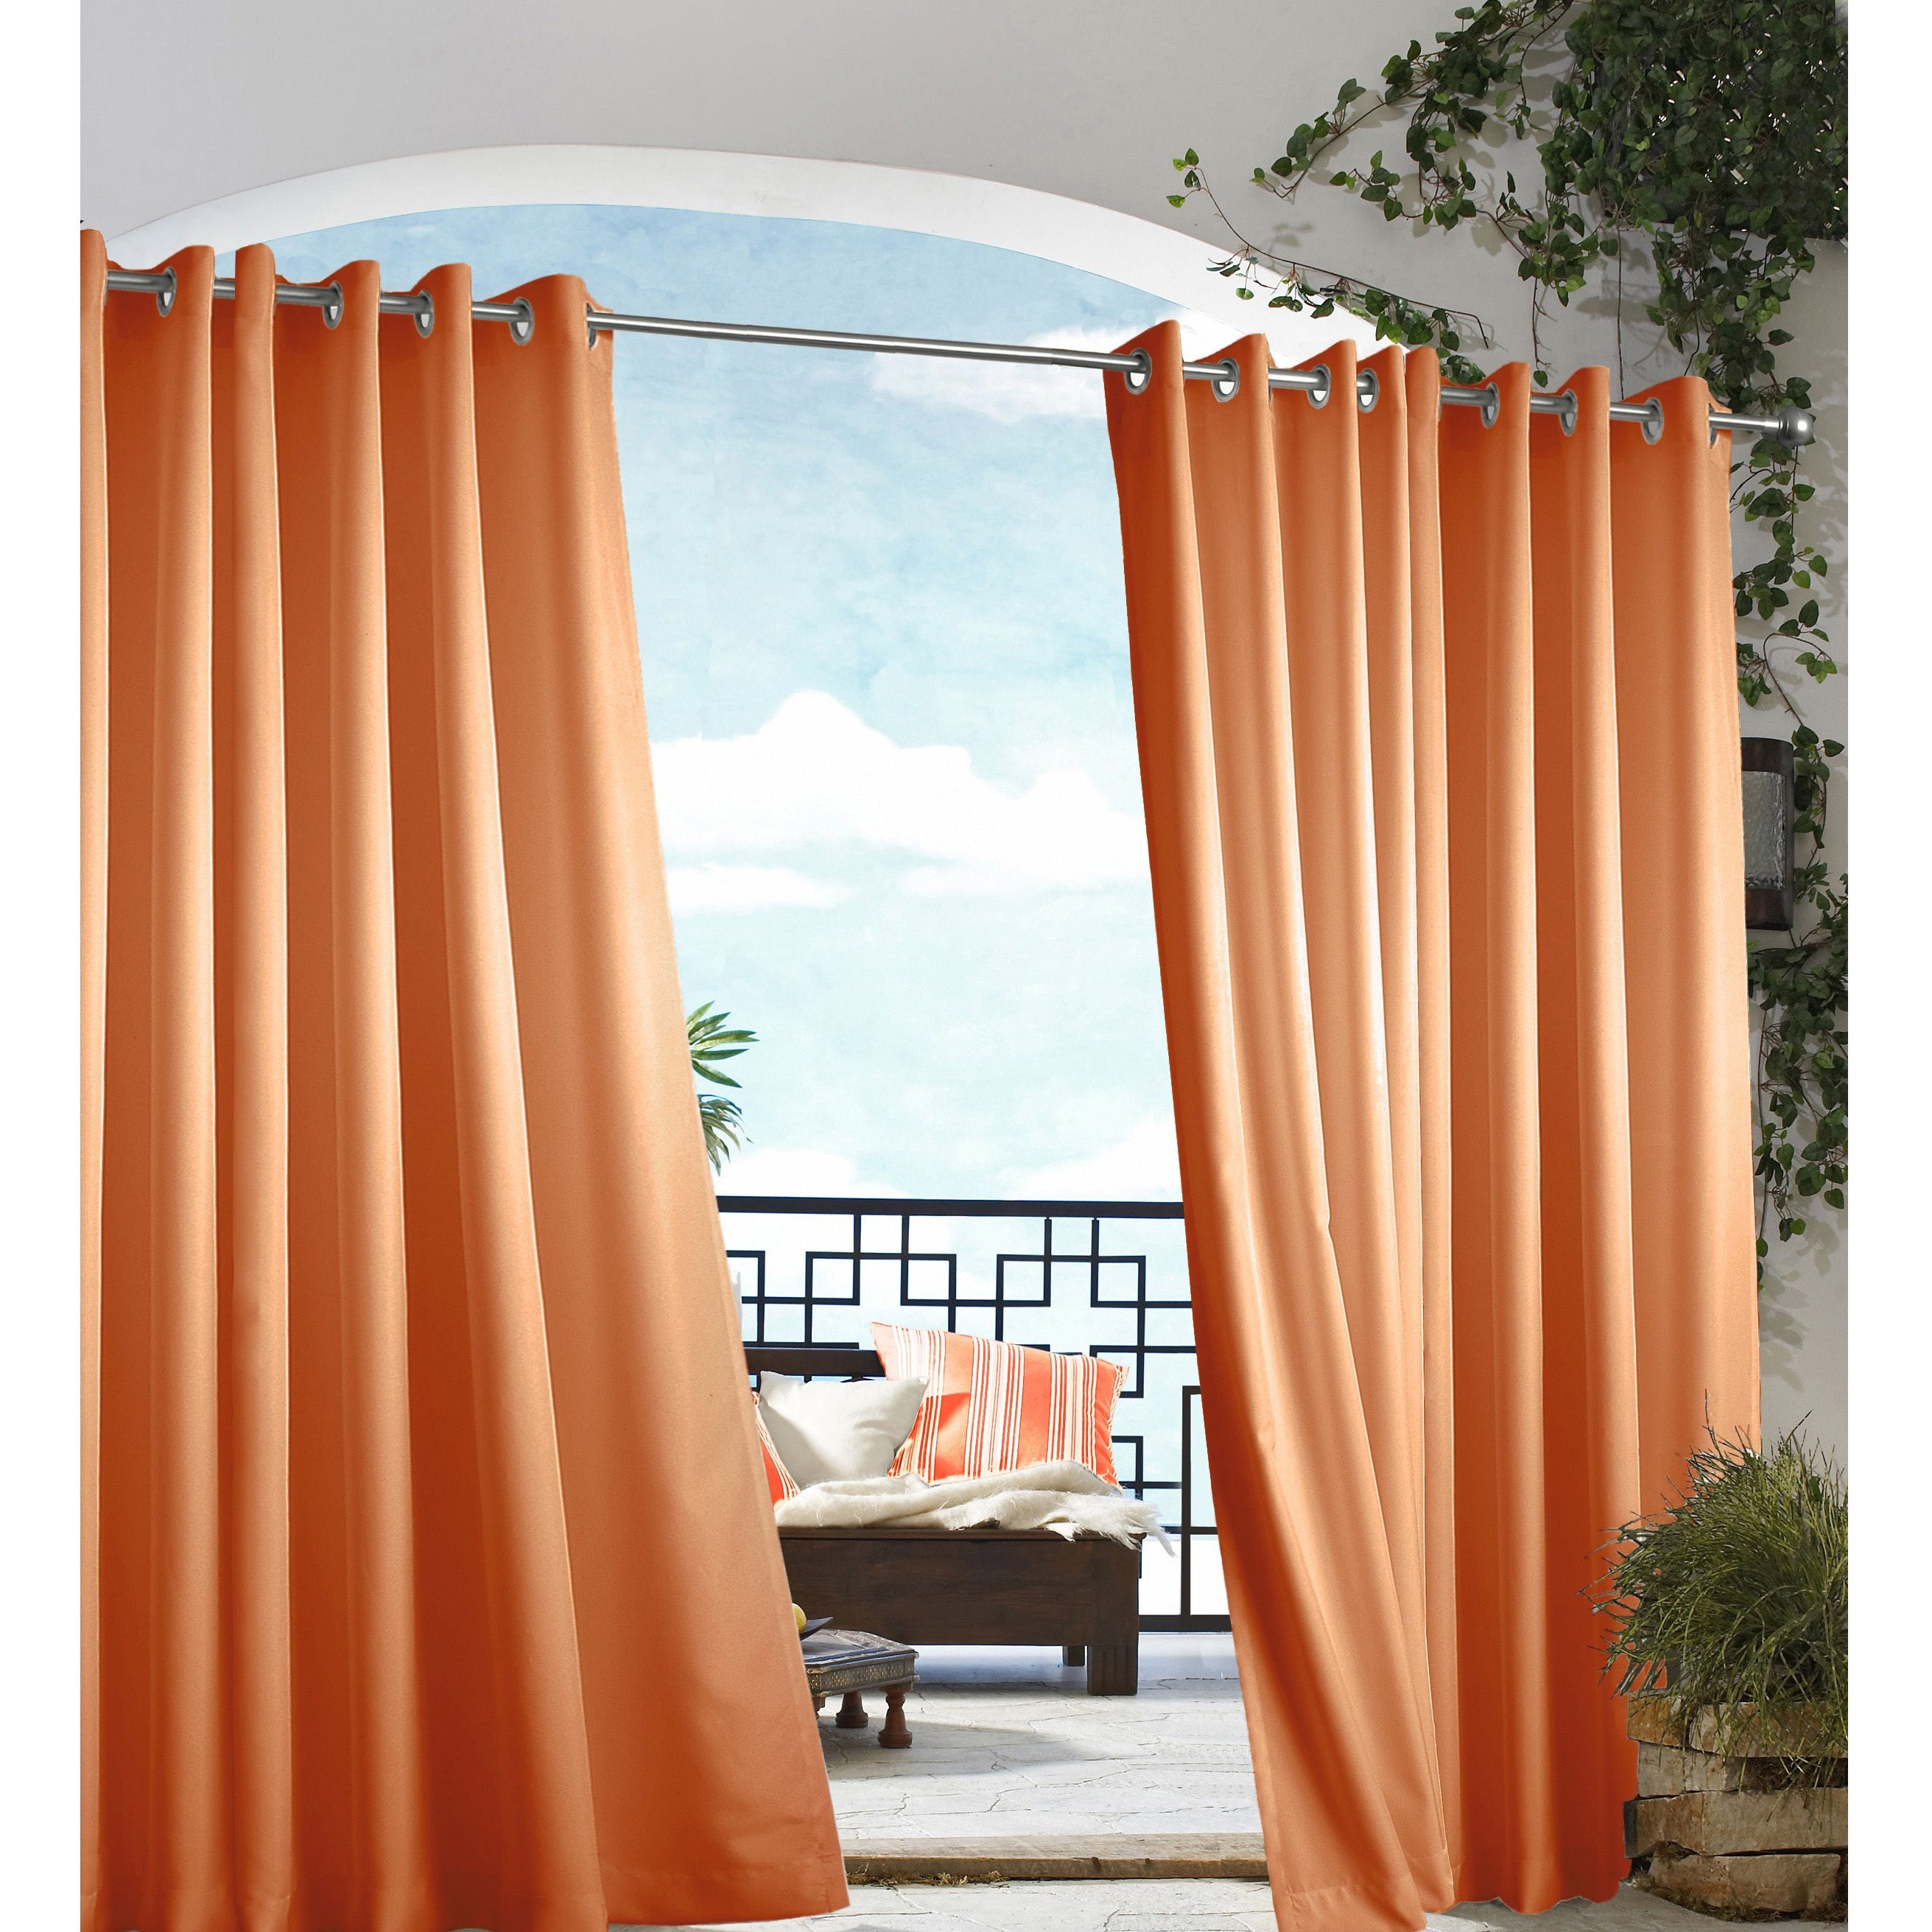 tips size gazebocheap fascinating outdoor curtains of comfort concept decor gazebo grommet replacement forn full sheer top curtain uniquens awesome for cheap gazebosdiy white picture panels marvelous